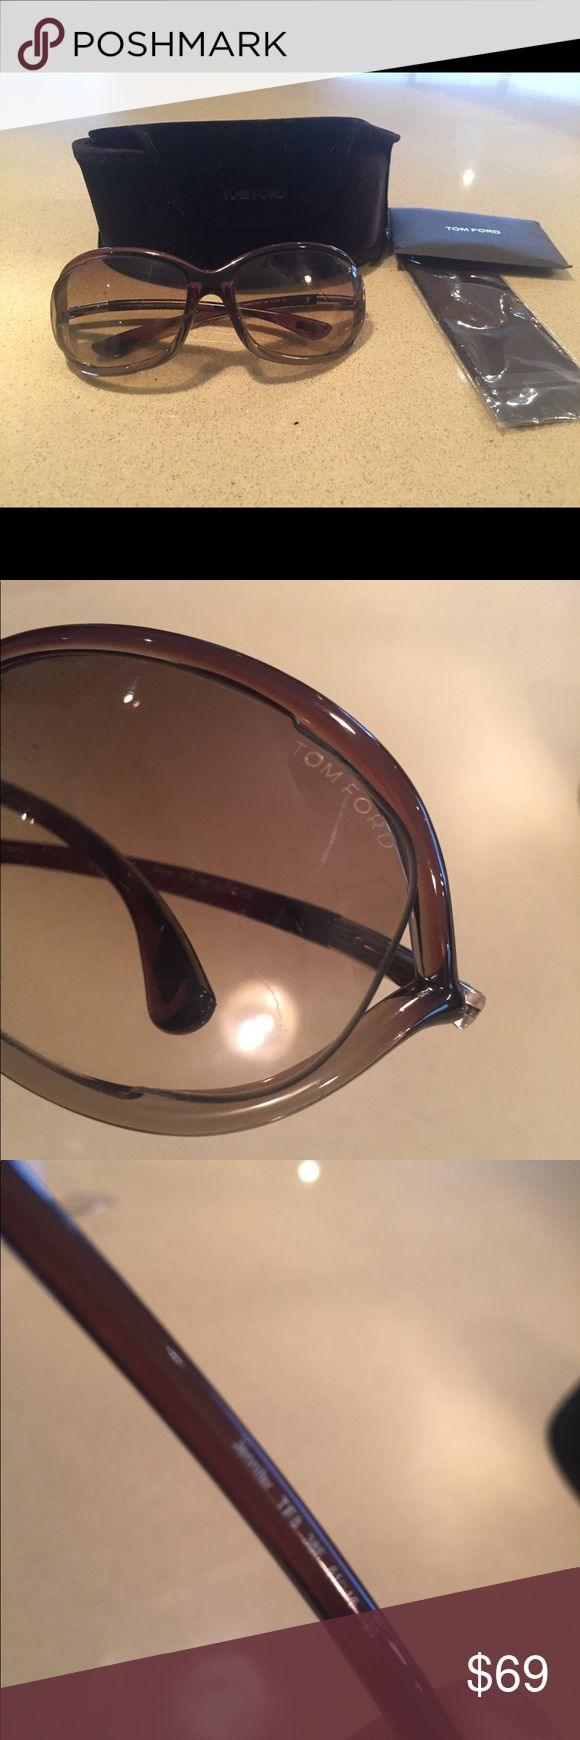 Tom Ford Jennifer brown sunglasses Great condition Tom Ford Jennifer brown sunglasses. Hairline scratch on one lens not noticeable when wearing. Comes with case, cleaning cloth. Tom Ford Accessories Sunglasses